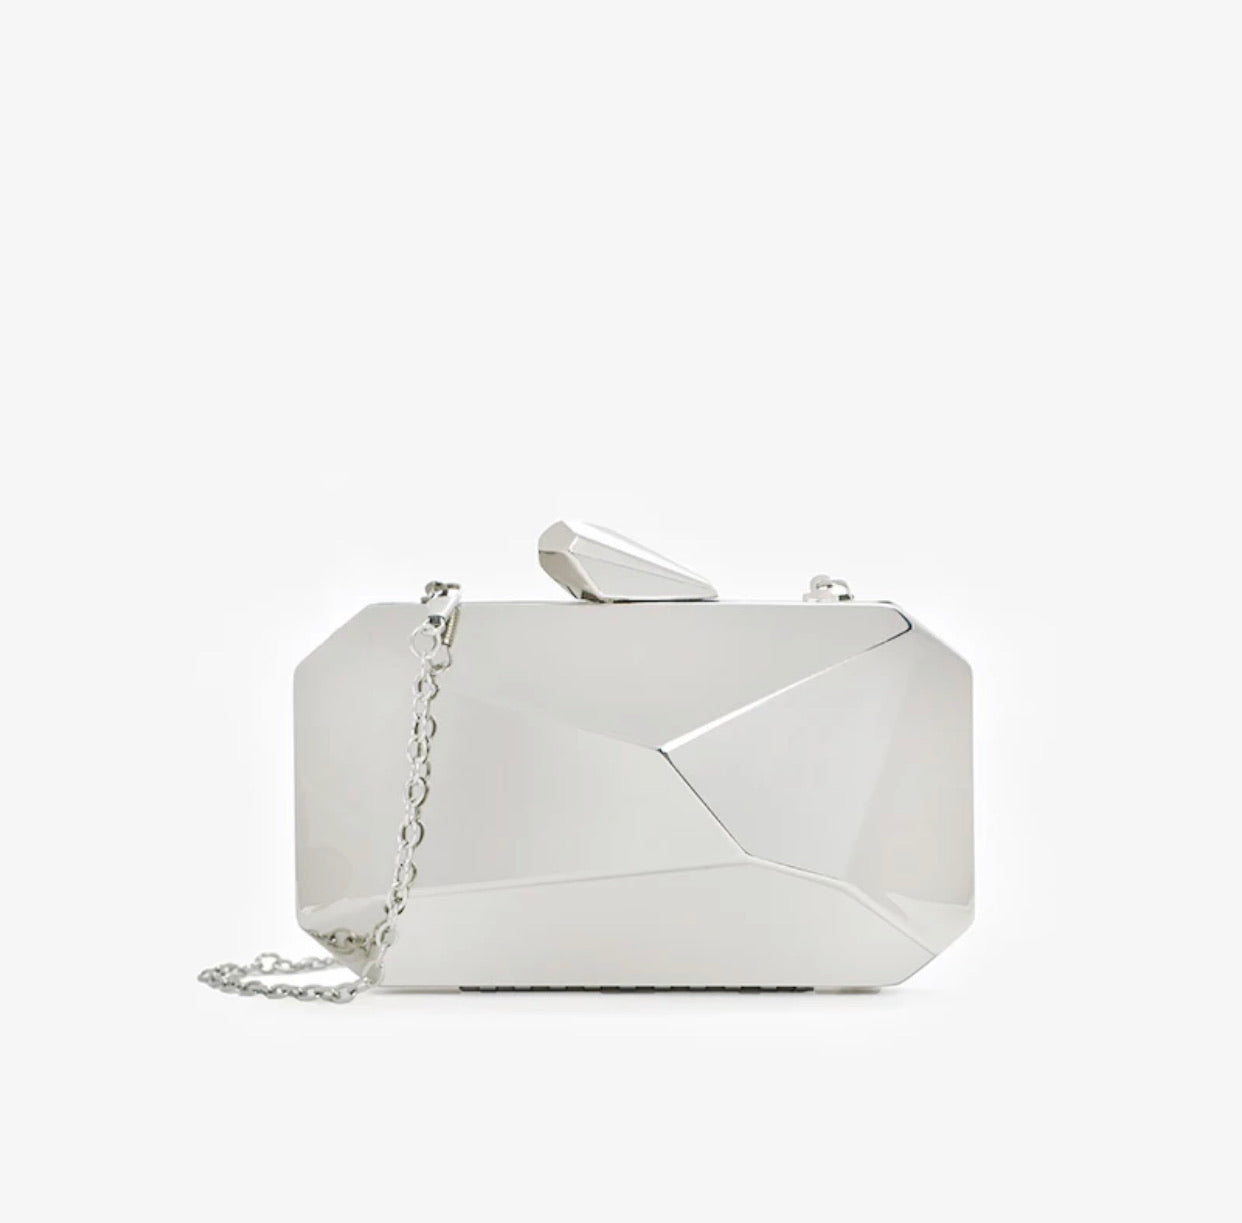 Matte Geometrical Evening Clutch - BEYAZURA.COM